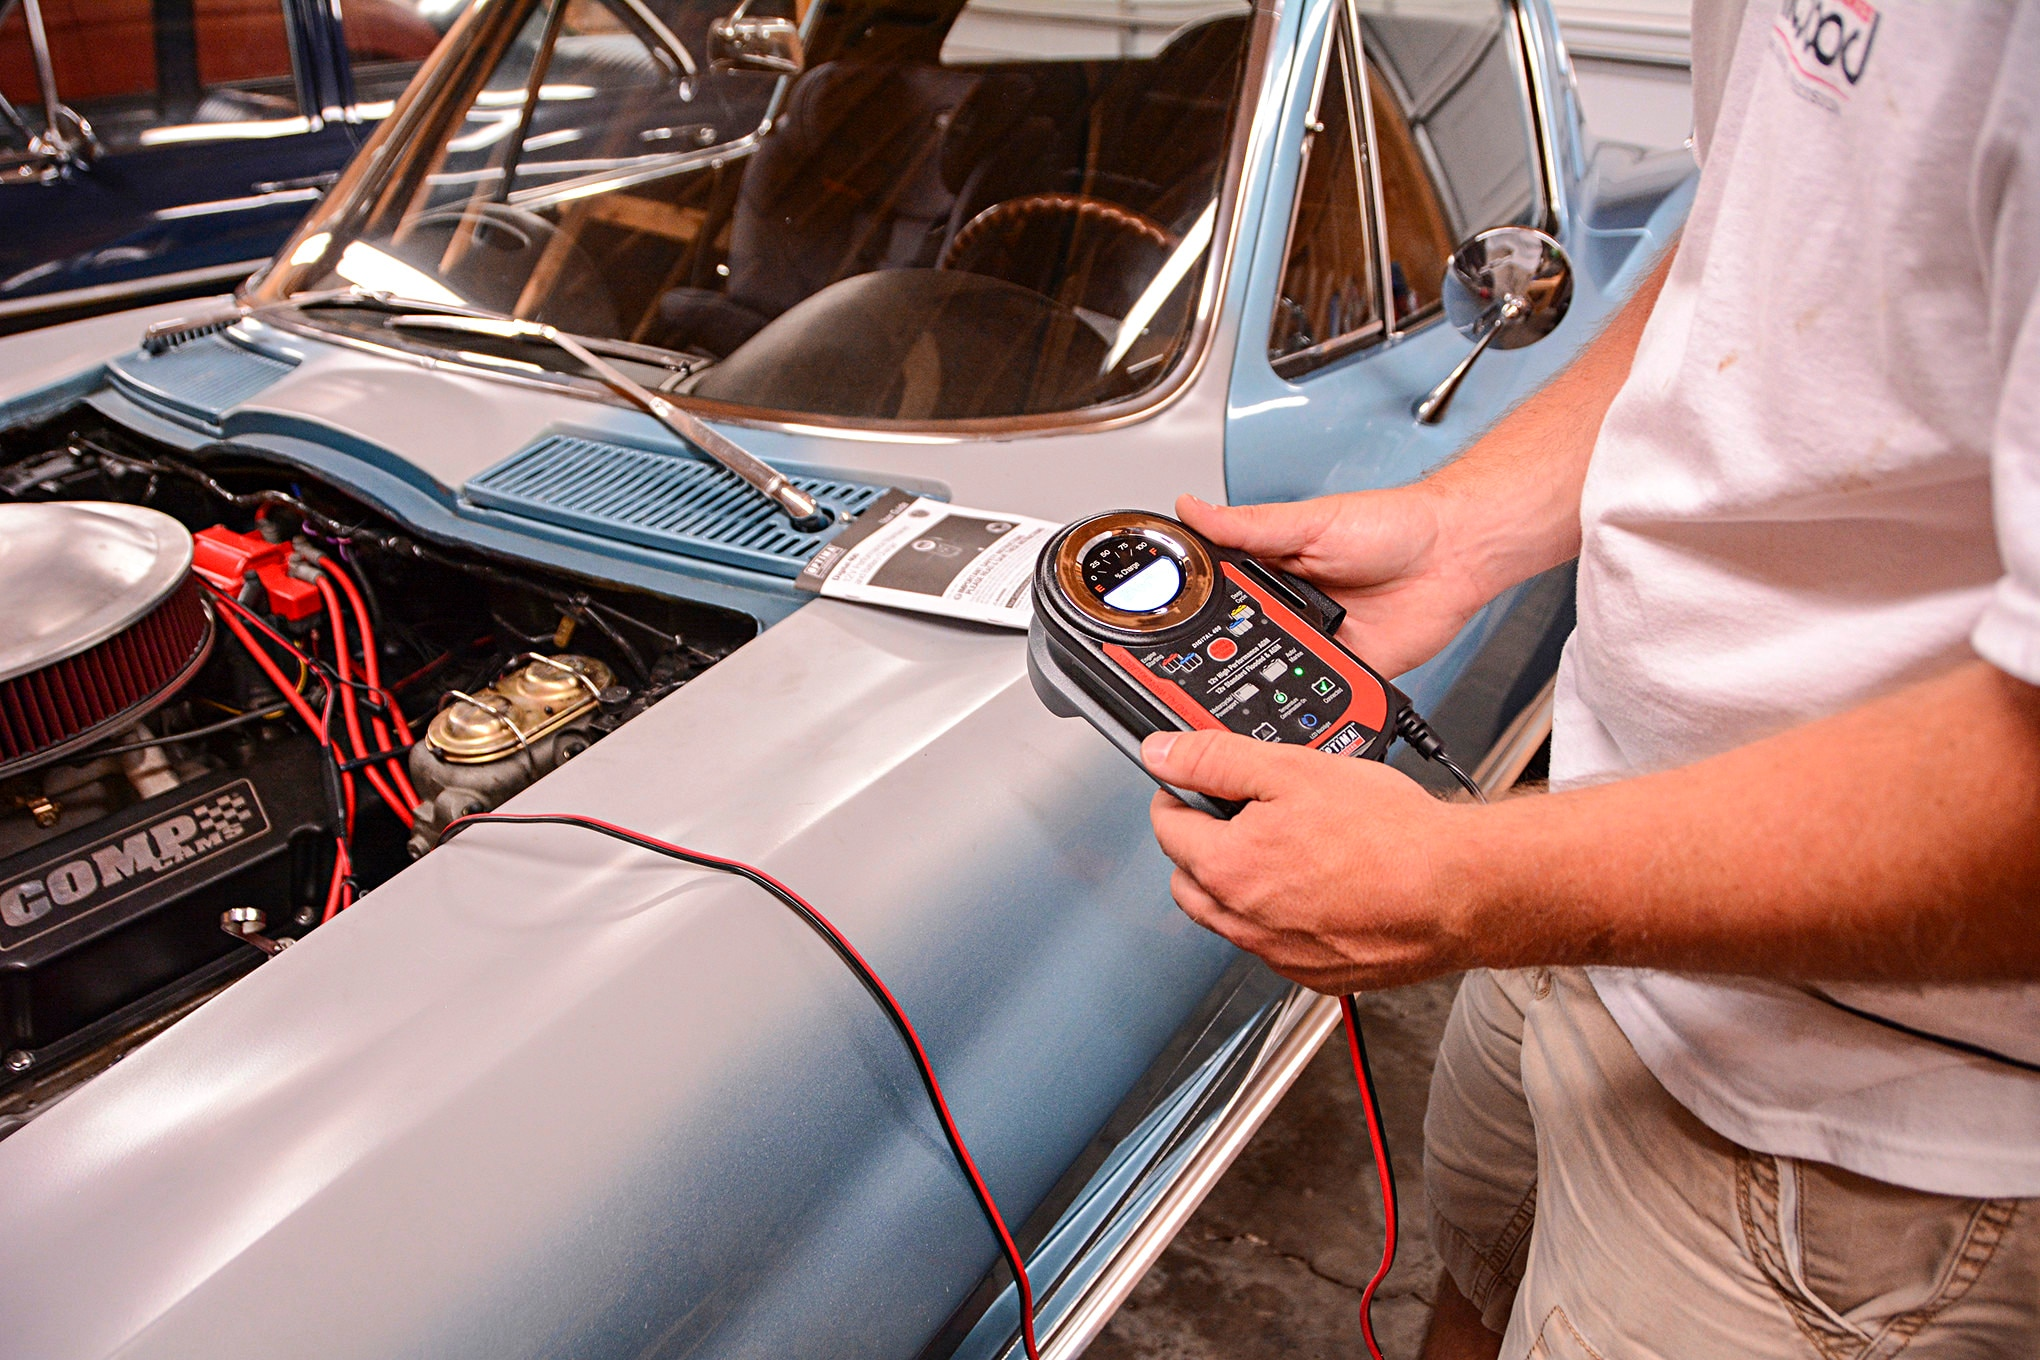 show car engine wiring wiring diagram forward corvette wiring gremlins solved and charging system upgrade show [ 2040 x 1360 Pixel ]